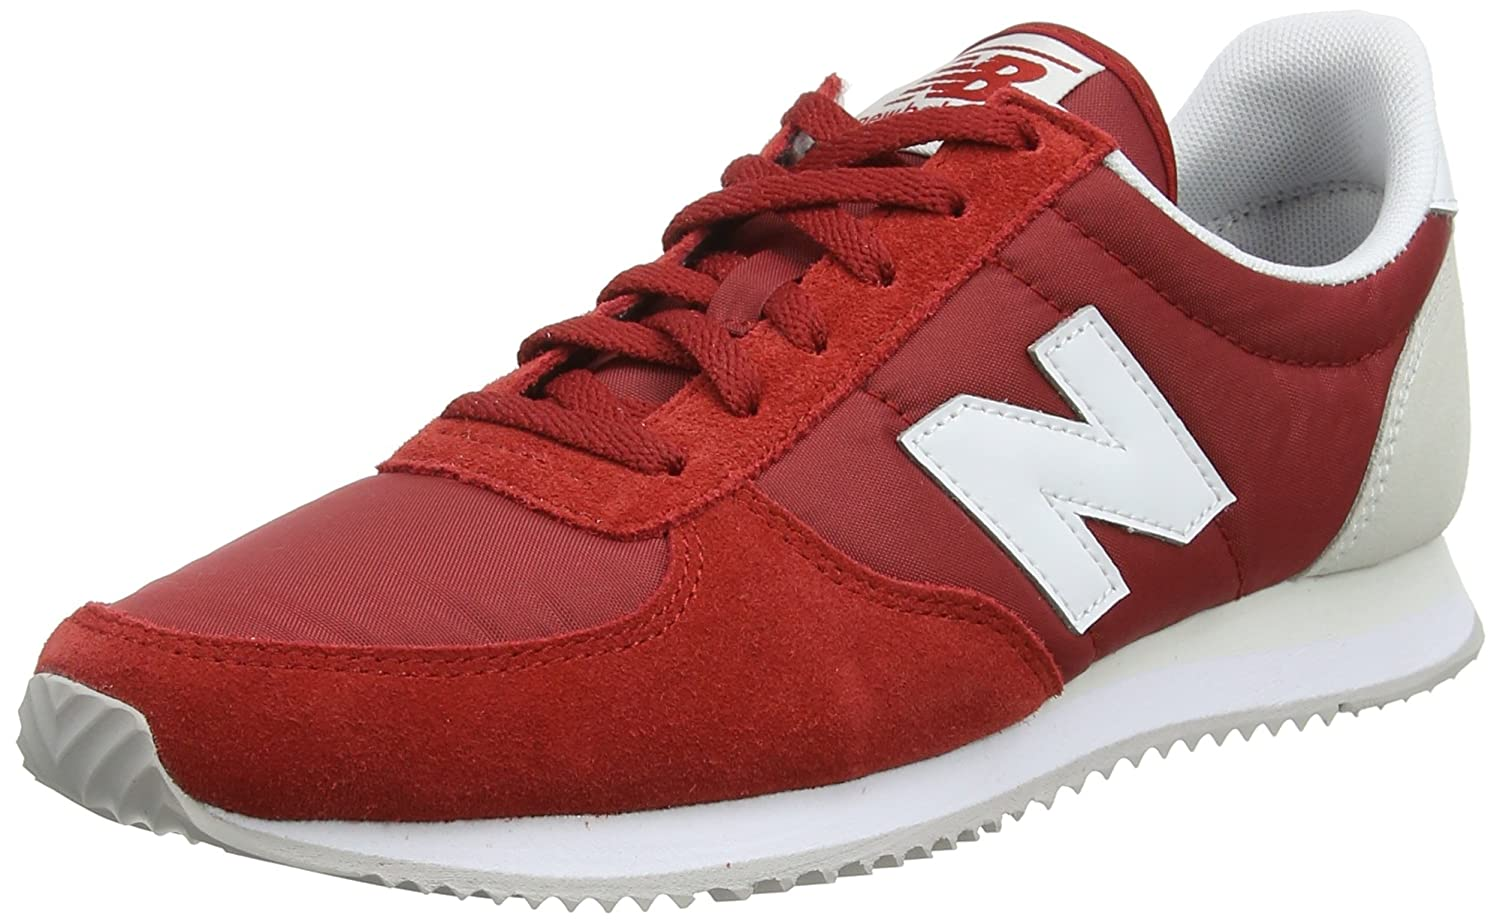 New Balance Women's 220v1 Sneaker B0751RDTYR 8 B(M) US|Tempo Red/Sea Salt